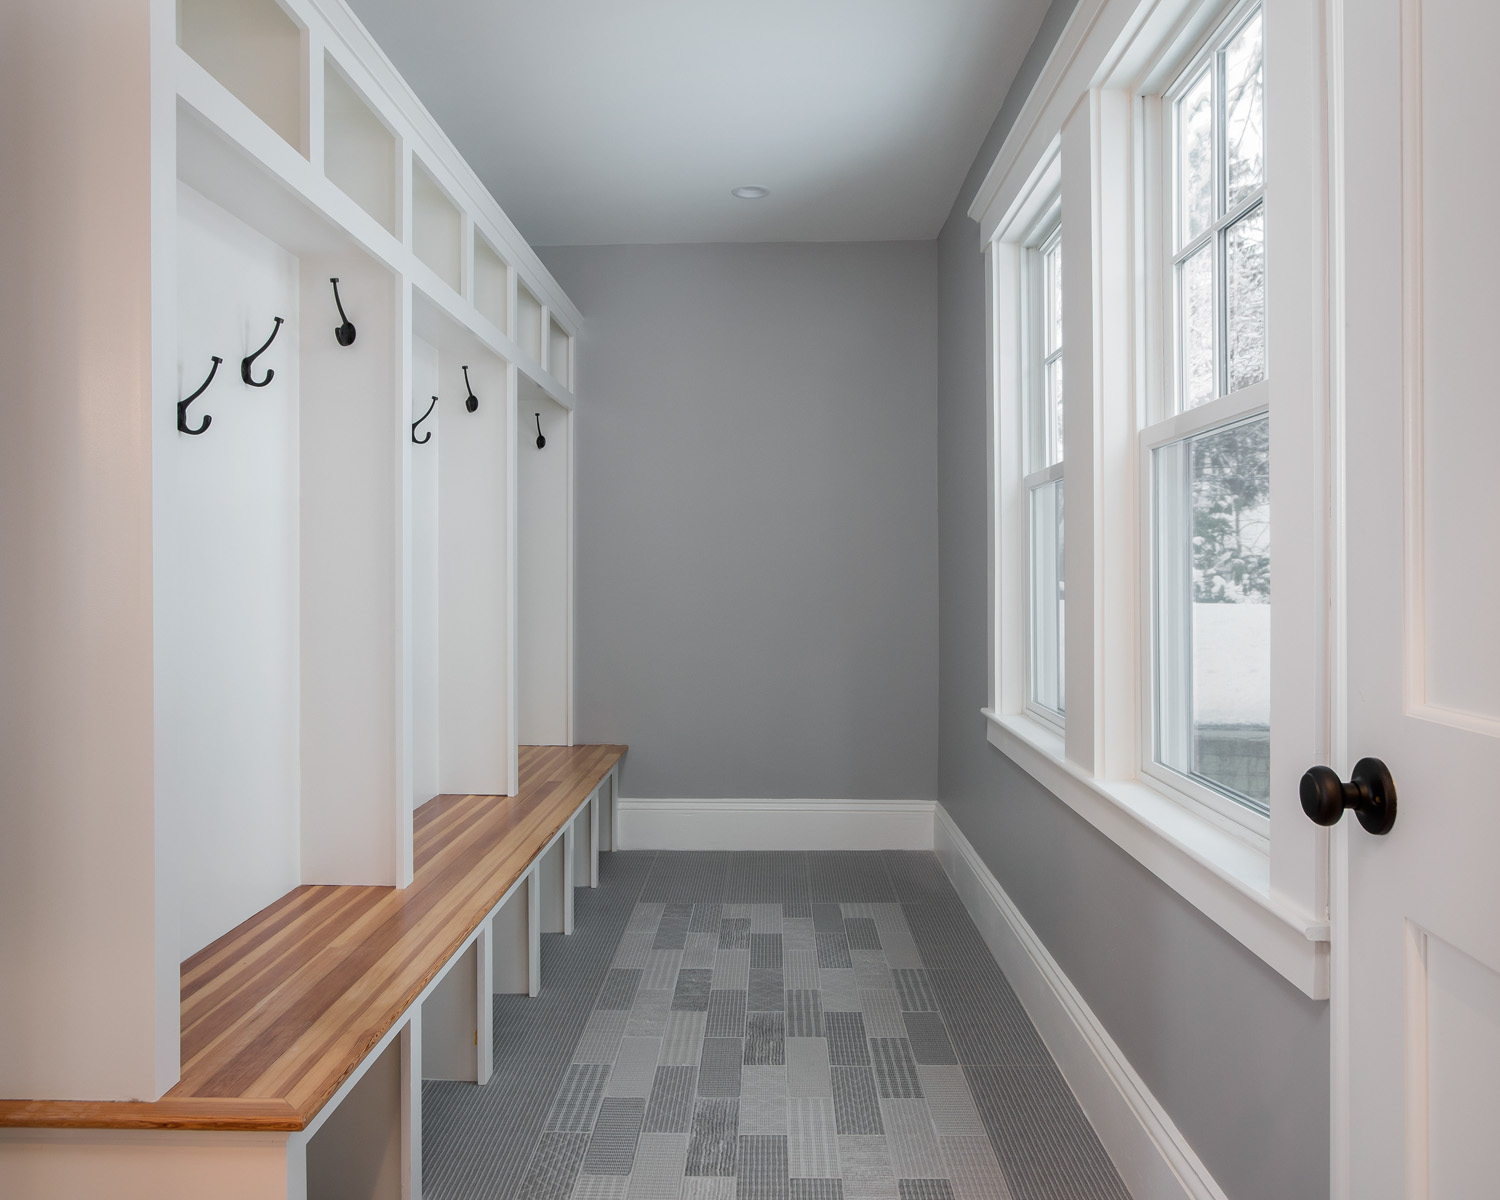 3-KitchenVisions-Mudroom-Remodel-Tiled-Ffamily-of-8-Belmont.jpg